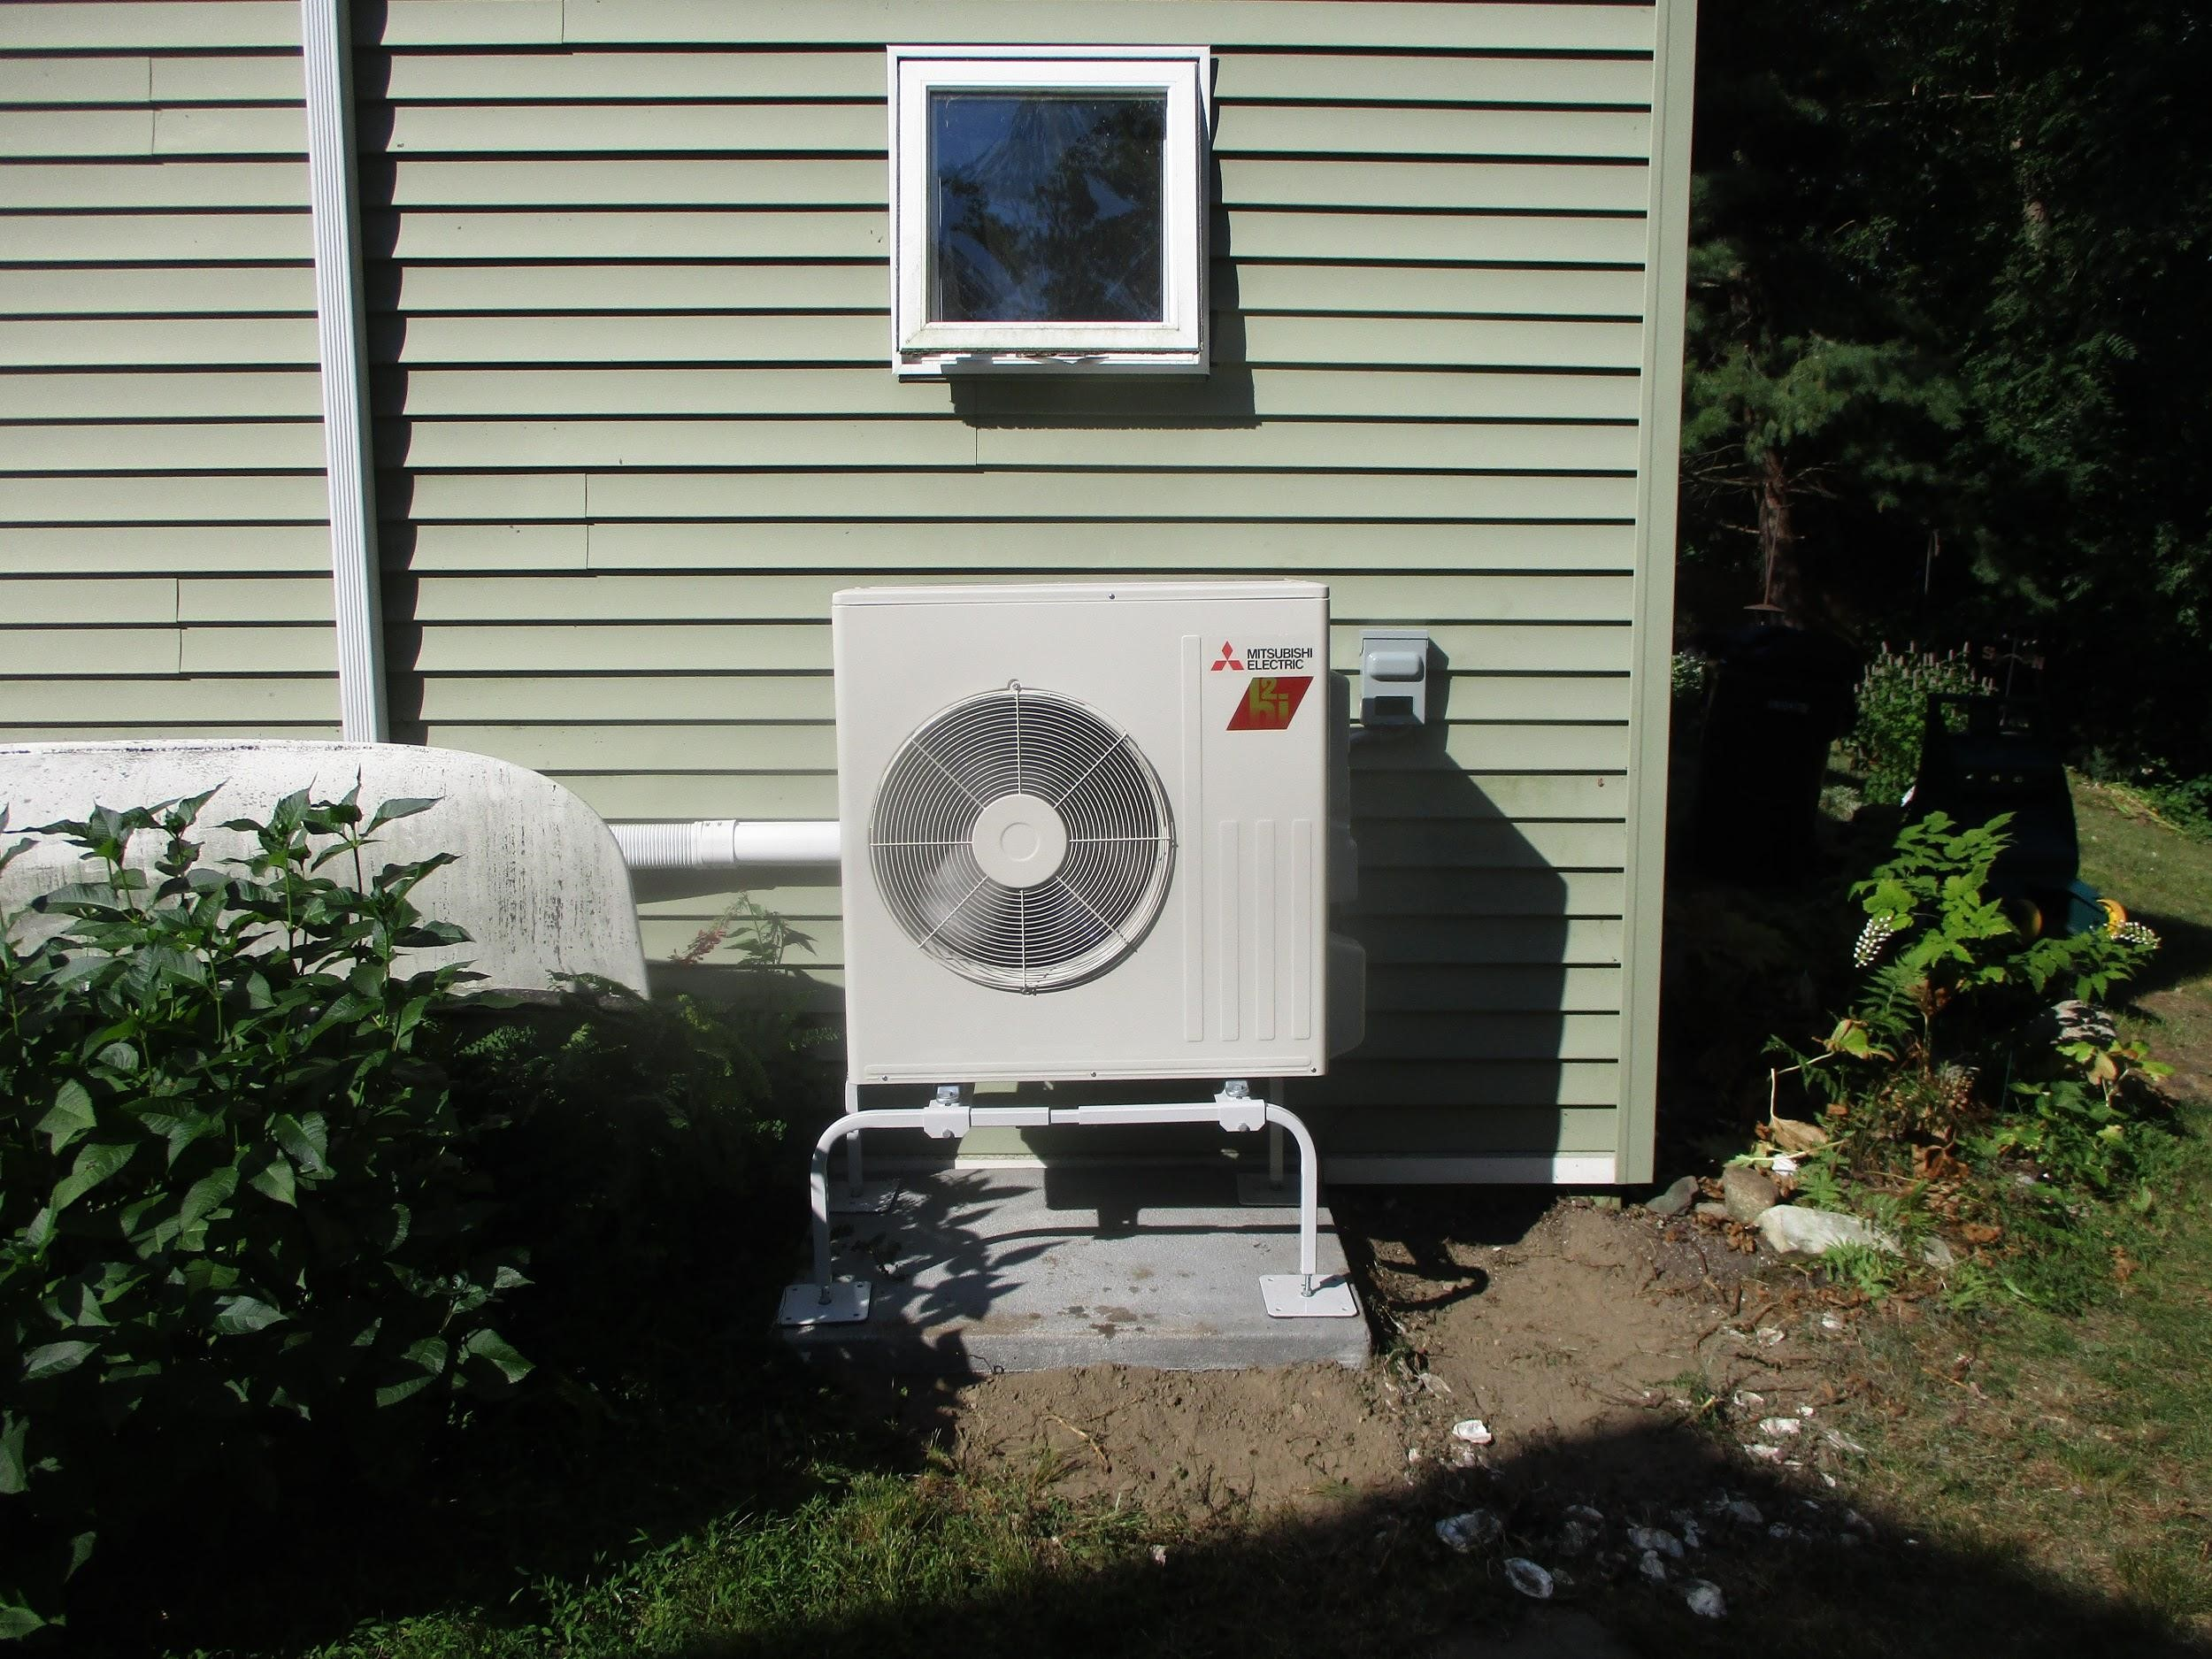 Outdoor heat pump installed for Mitsubishi system in Framingham home.